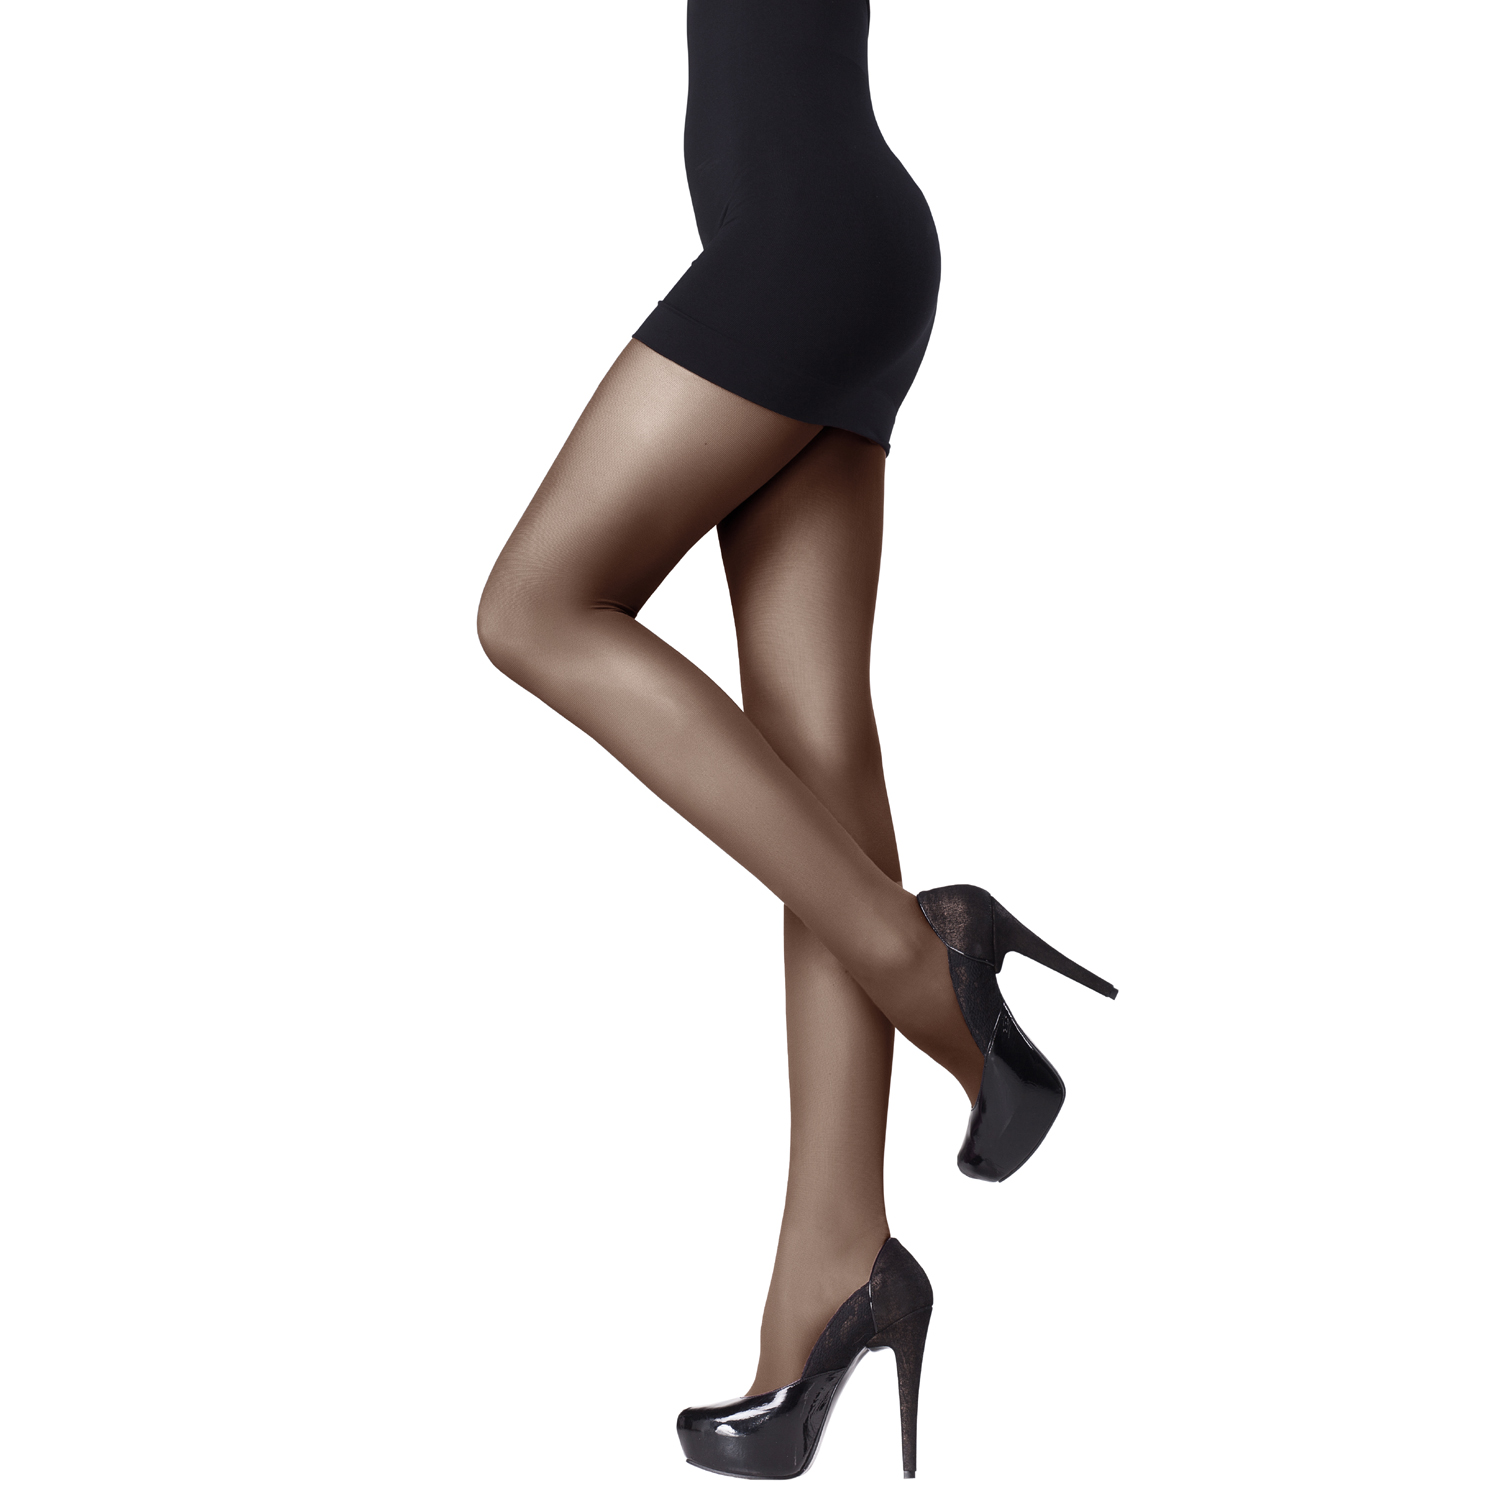 GABRIALLA Style H-330 Sheer Pantyhose